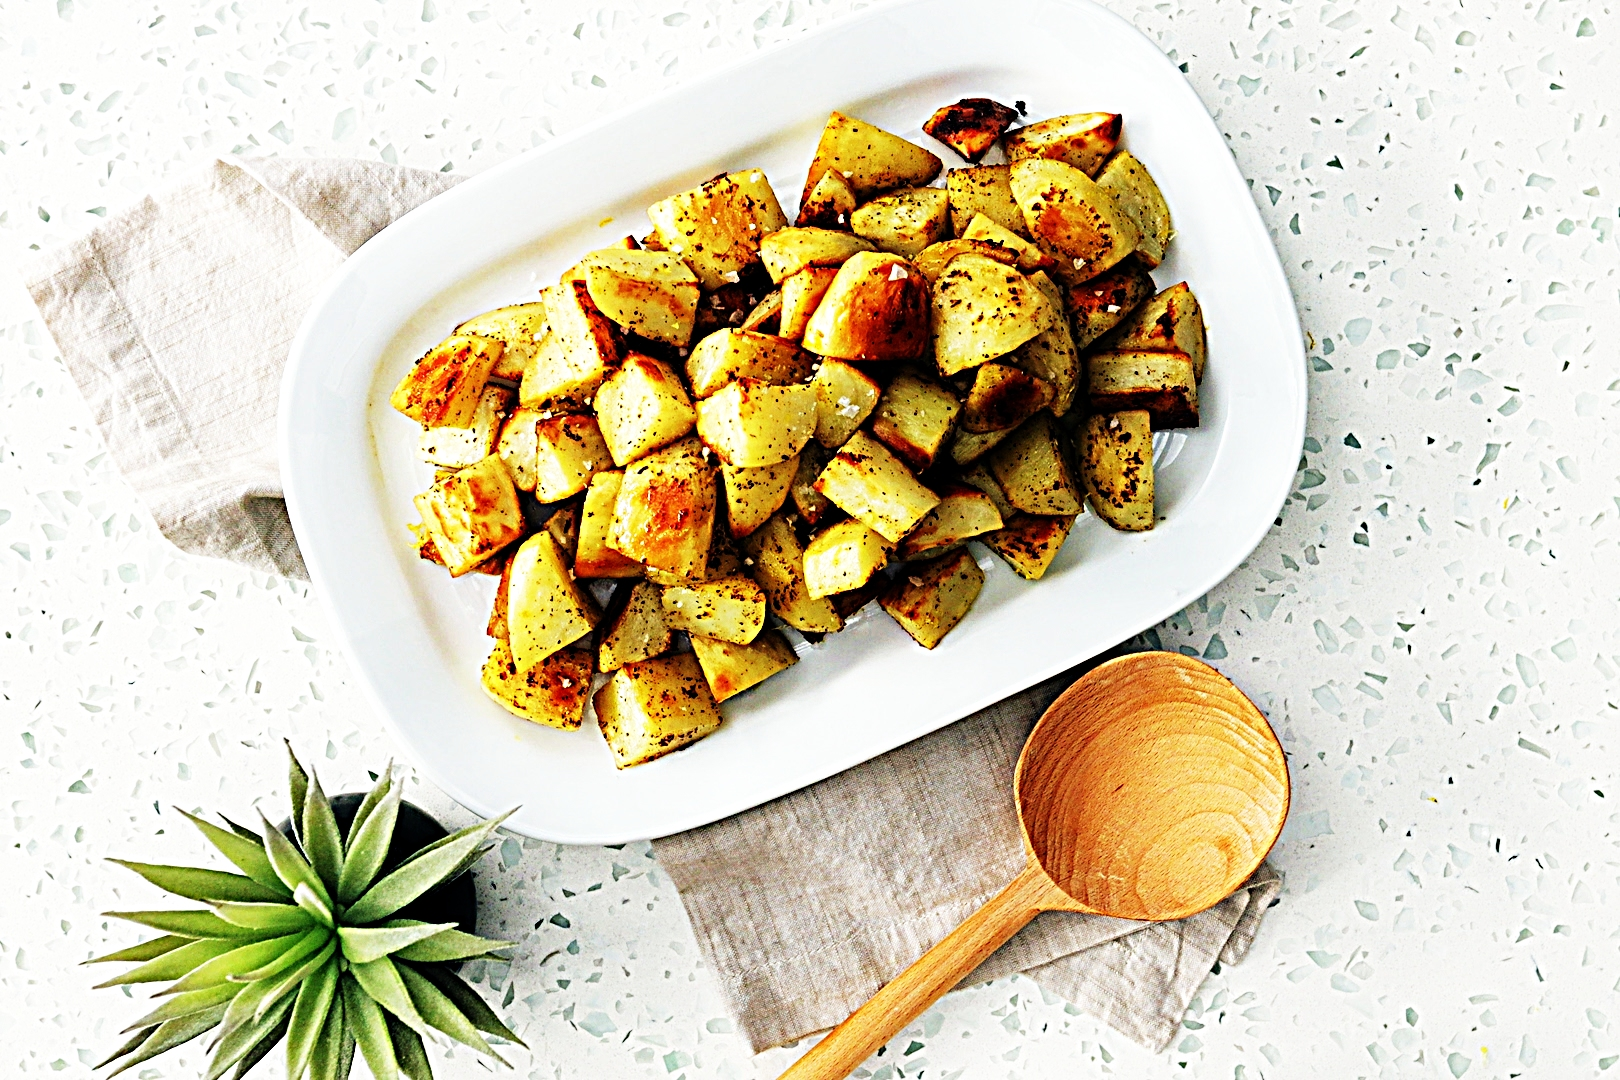 Stupid-Easy Recipe for Lemon and Black Pepper Roasted Potatoes (#1 Top-Rated)